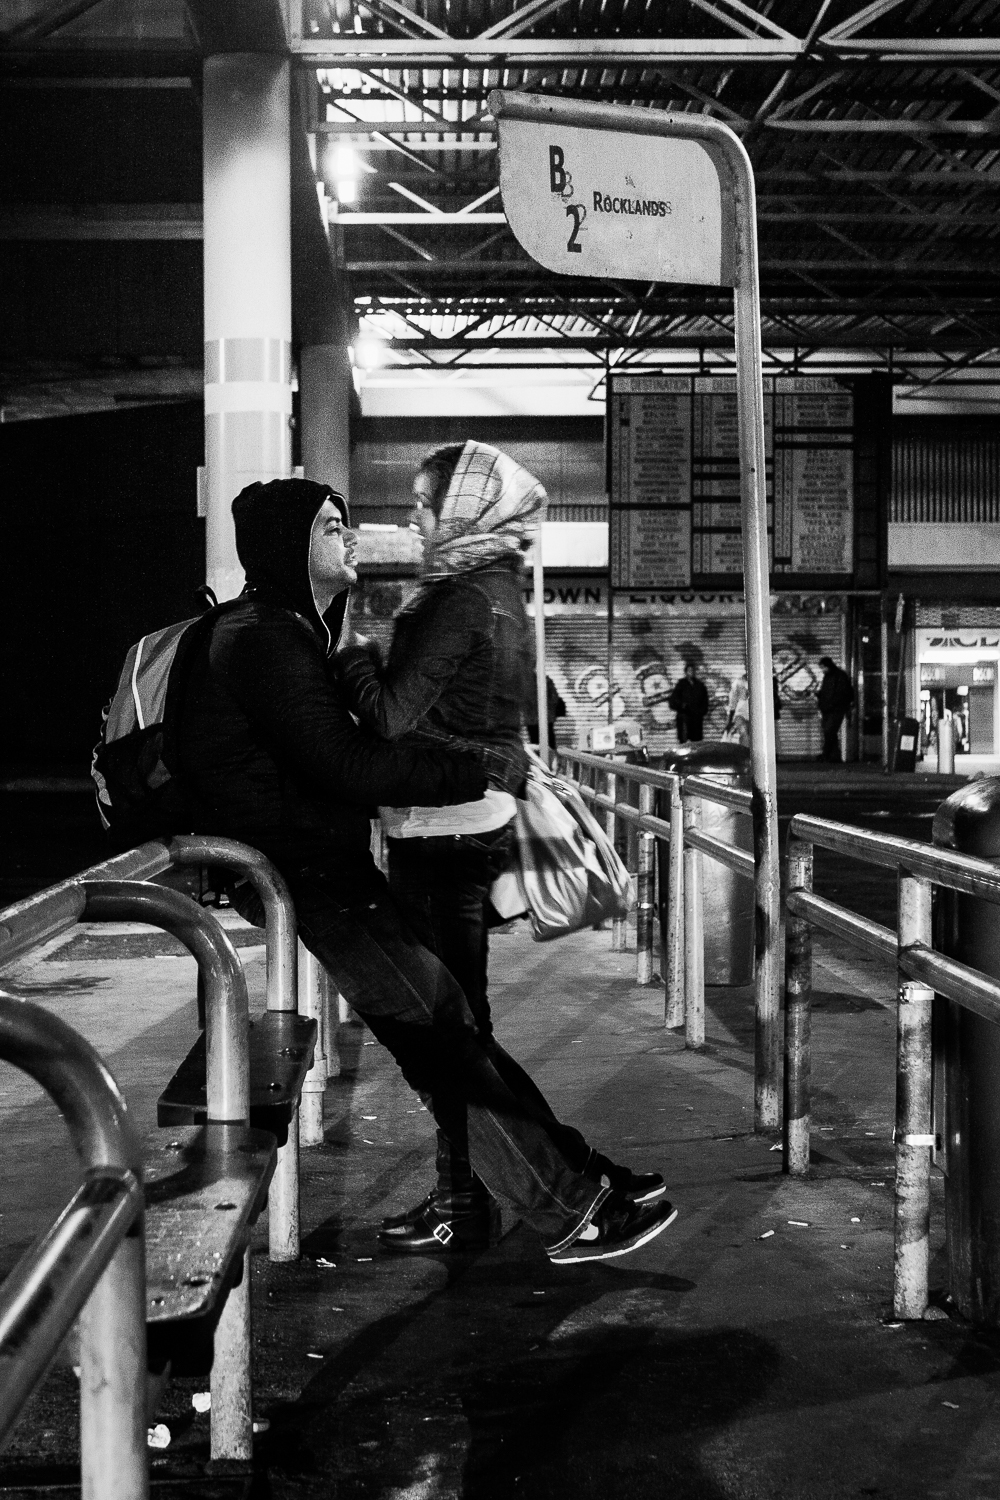 A young couple waiting for the bus to Rocklands, Cape Town, 2009.